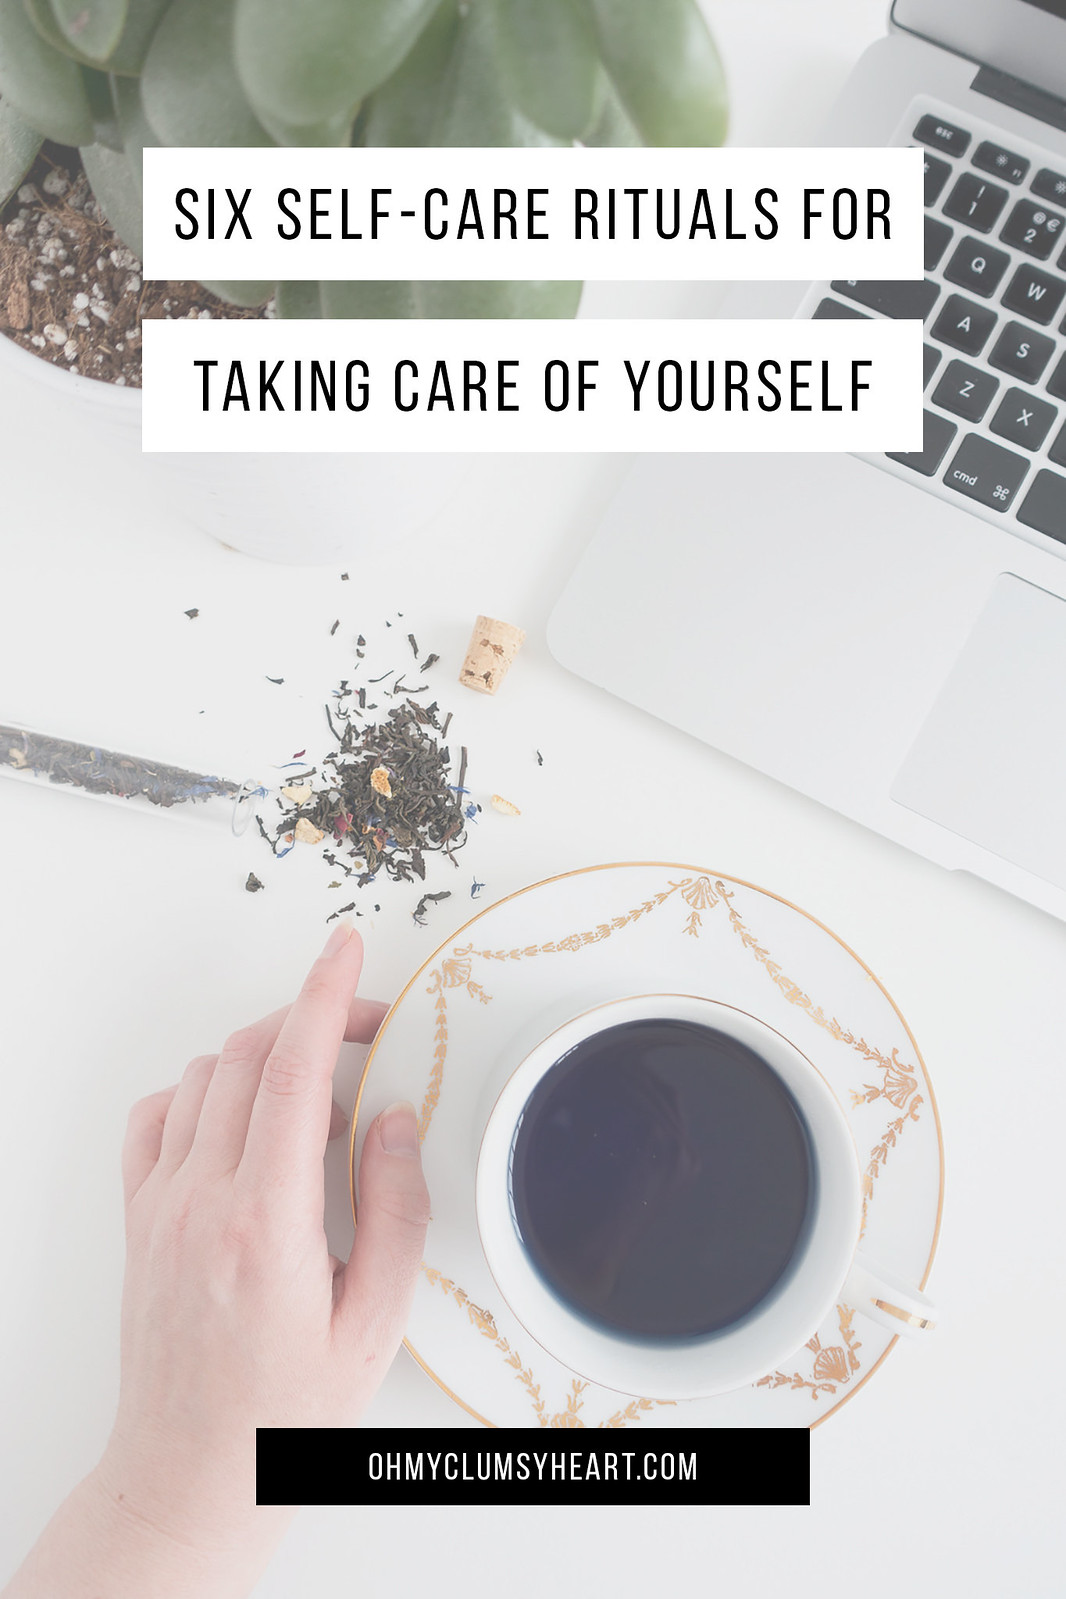 Take Care Of Yourself: 6 Self-Care Rituals